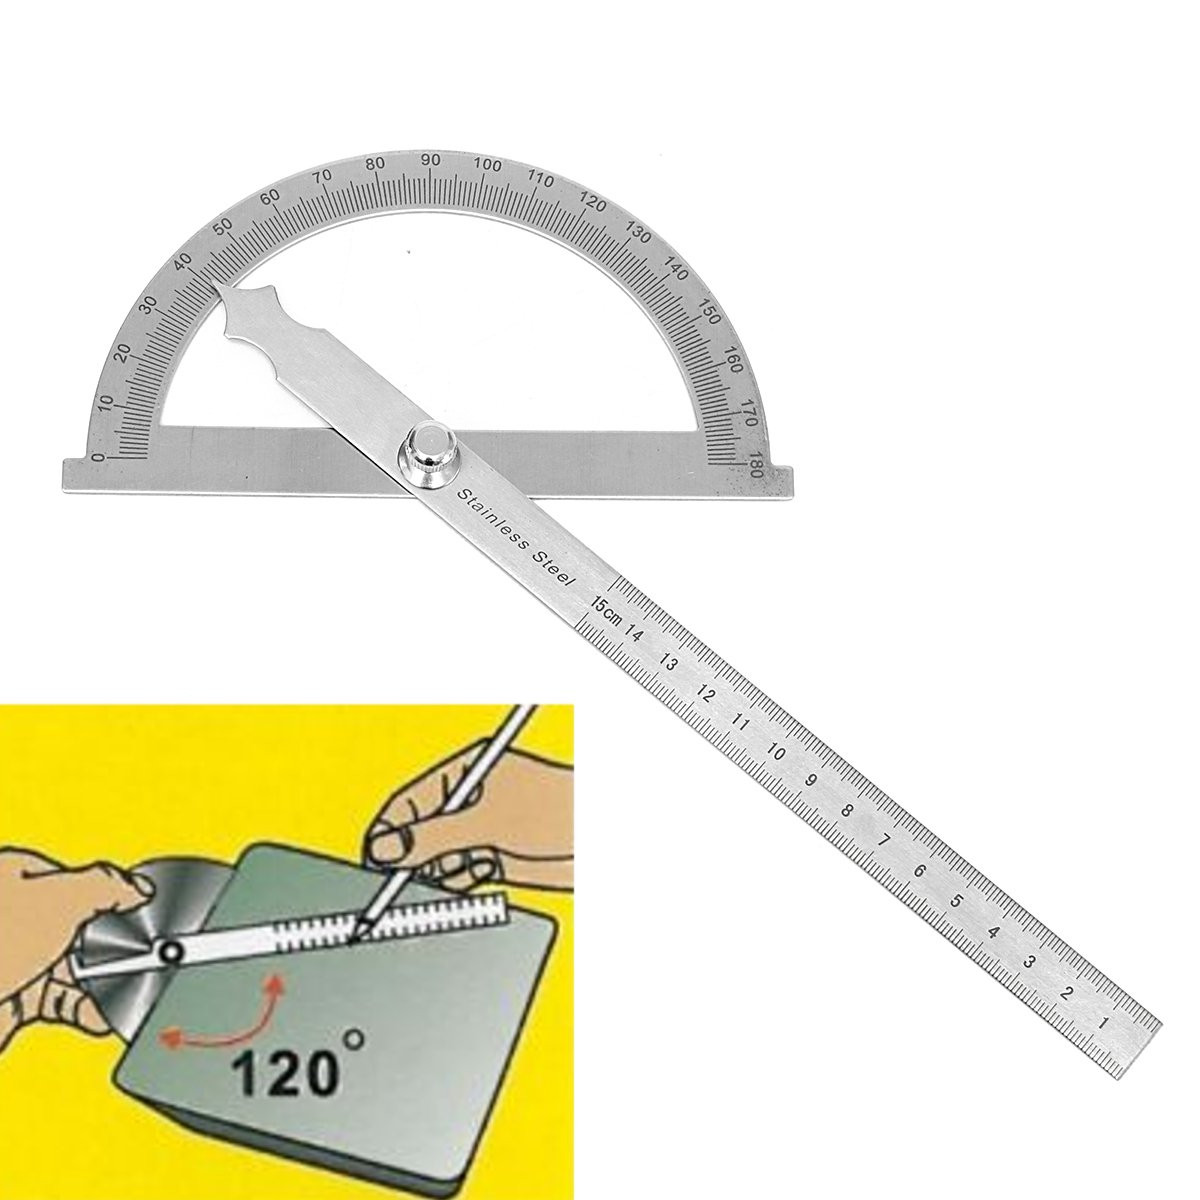 180 Degree Detachable Angle Protractor Ruler Stainless Steel Round Head Rotary Protractor Angle Finder Arm Measuring Ruler Tool